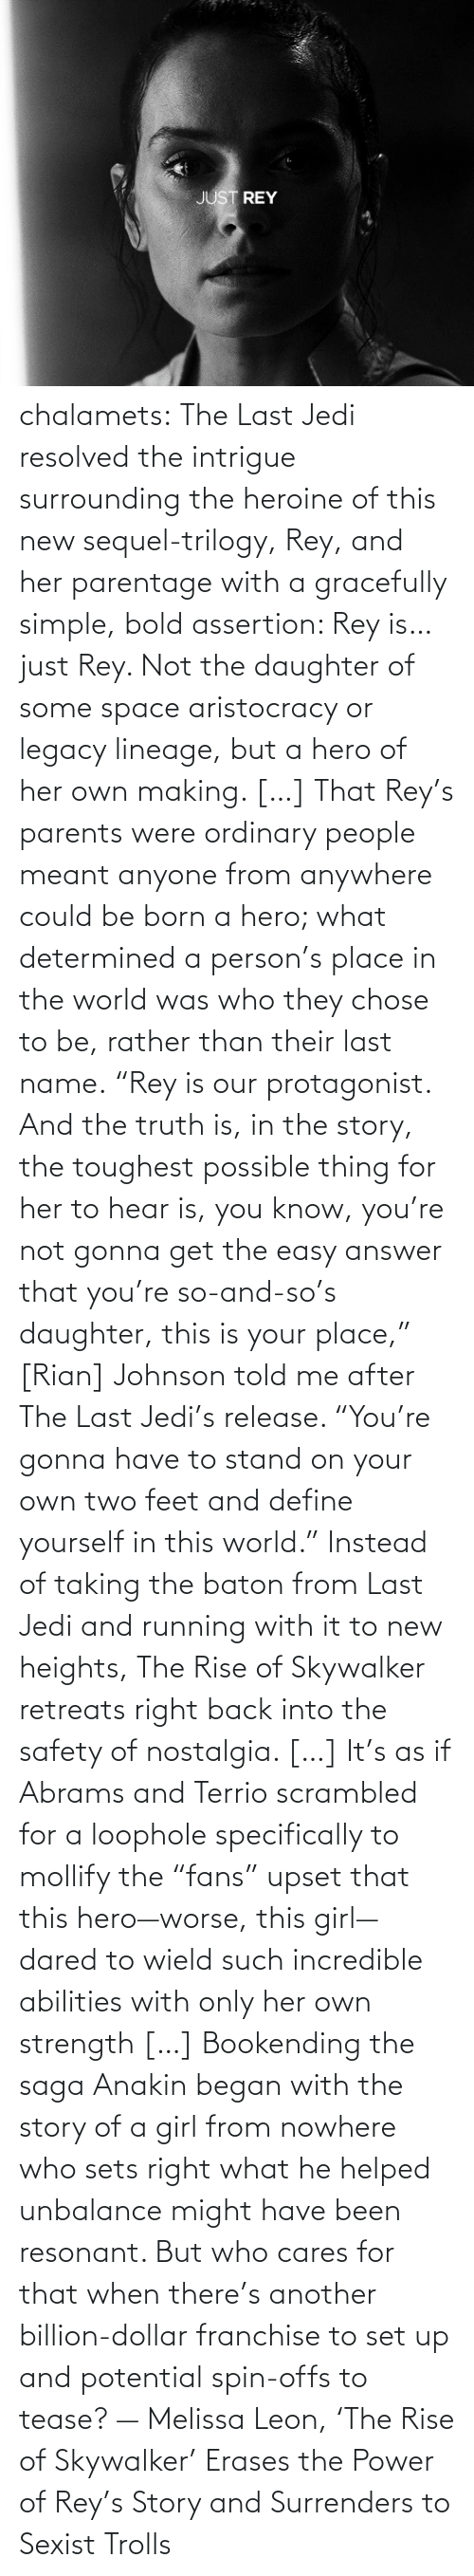 "story: chalamets:  The Last Jedi resolved the intrigue surrounding the heroine of this new sequel-trilogy, Rey, and her parentage with a gracefully simple, bold assertion: Rey is… just Rey. Not the daughter of some space aristocracy or legacy lineage, but a hero of her own making. […] That Rey's parents were ordinary people meant anyone from anywhere could be born a hero; what determined a person's place in the world was who they chose to be, rather than their last name. ""Rey is our protagonist. And the truth is, in the story, the toughest possible thing for her to hear is, you know, you're not gonna get the easy answer that you're so-and-so's daughter, this is your place,"" [Rian] Johnson told me after The Last Jedi's release. ""You're gonna have to stand on your own two feet and define yourself in this world."" Instead of taking the baton from Last Jedi and running with it to new heights, The Rise of Skywalker retreats right back into the safety of nostalgia. […] It's as if Abrams and Terrio scrambled for a loophole specifically to mollify the ""fans"" upset that this hero—worse, this girl—dared to wield such incredible abilities with only her own strength […] Bookending the saga Anakin began with the story of a girl from nowhere who sets right what he helped unbalance might have been resonant. But who cares for that when there's another billion-dollar franchise to set up and potential spin-offs to tease? — Melissa Leon, 'The Rise of Skywalker' Erases the Power of Rey's Story and Surrenders to Sexist Trolls"